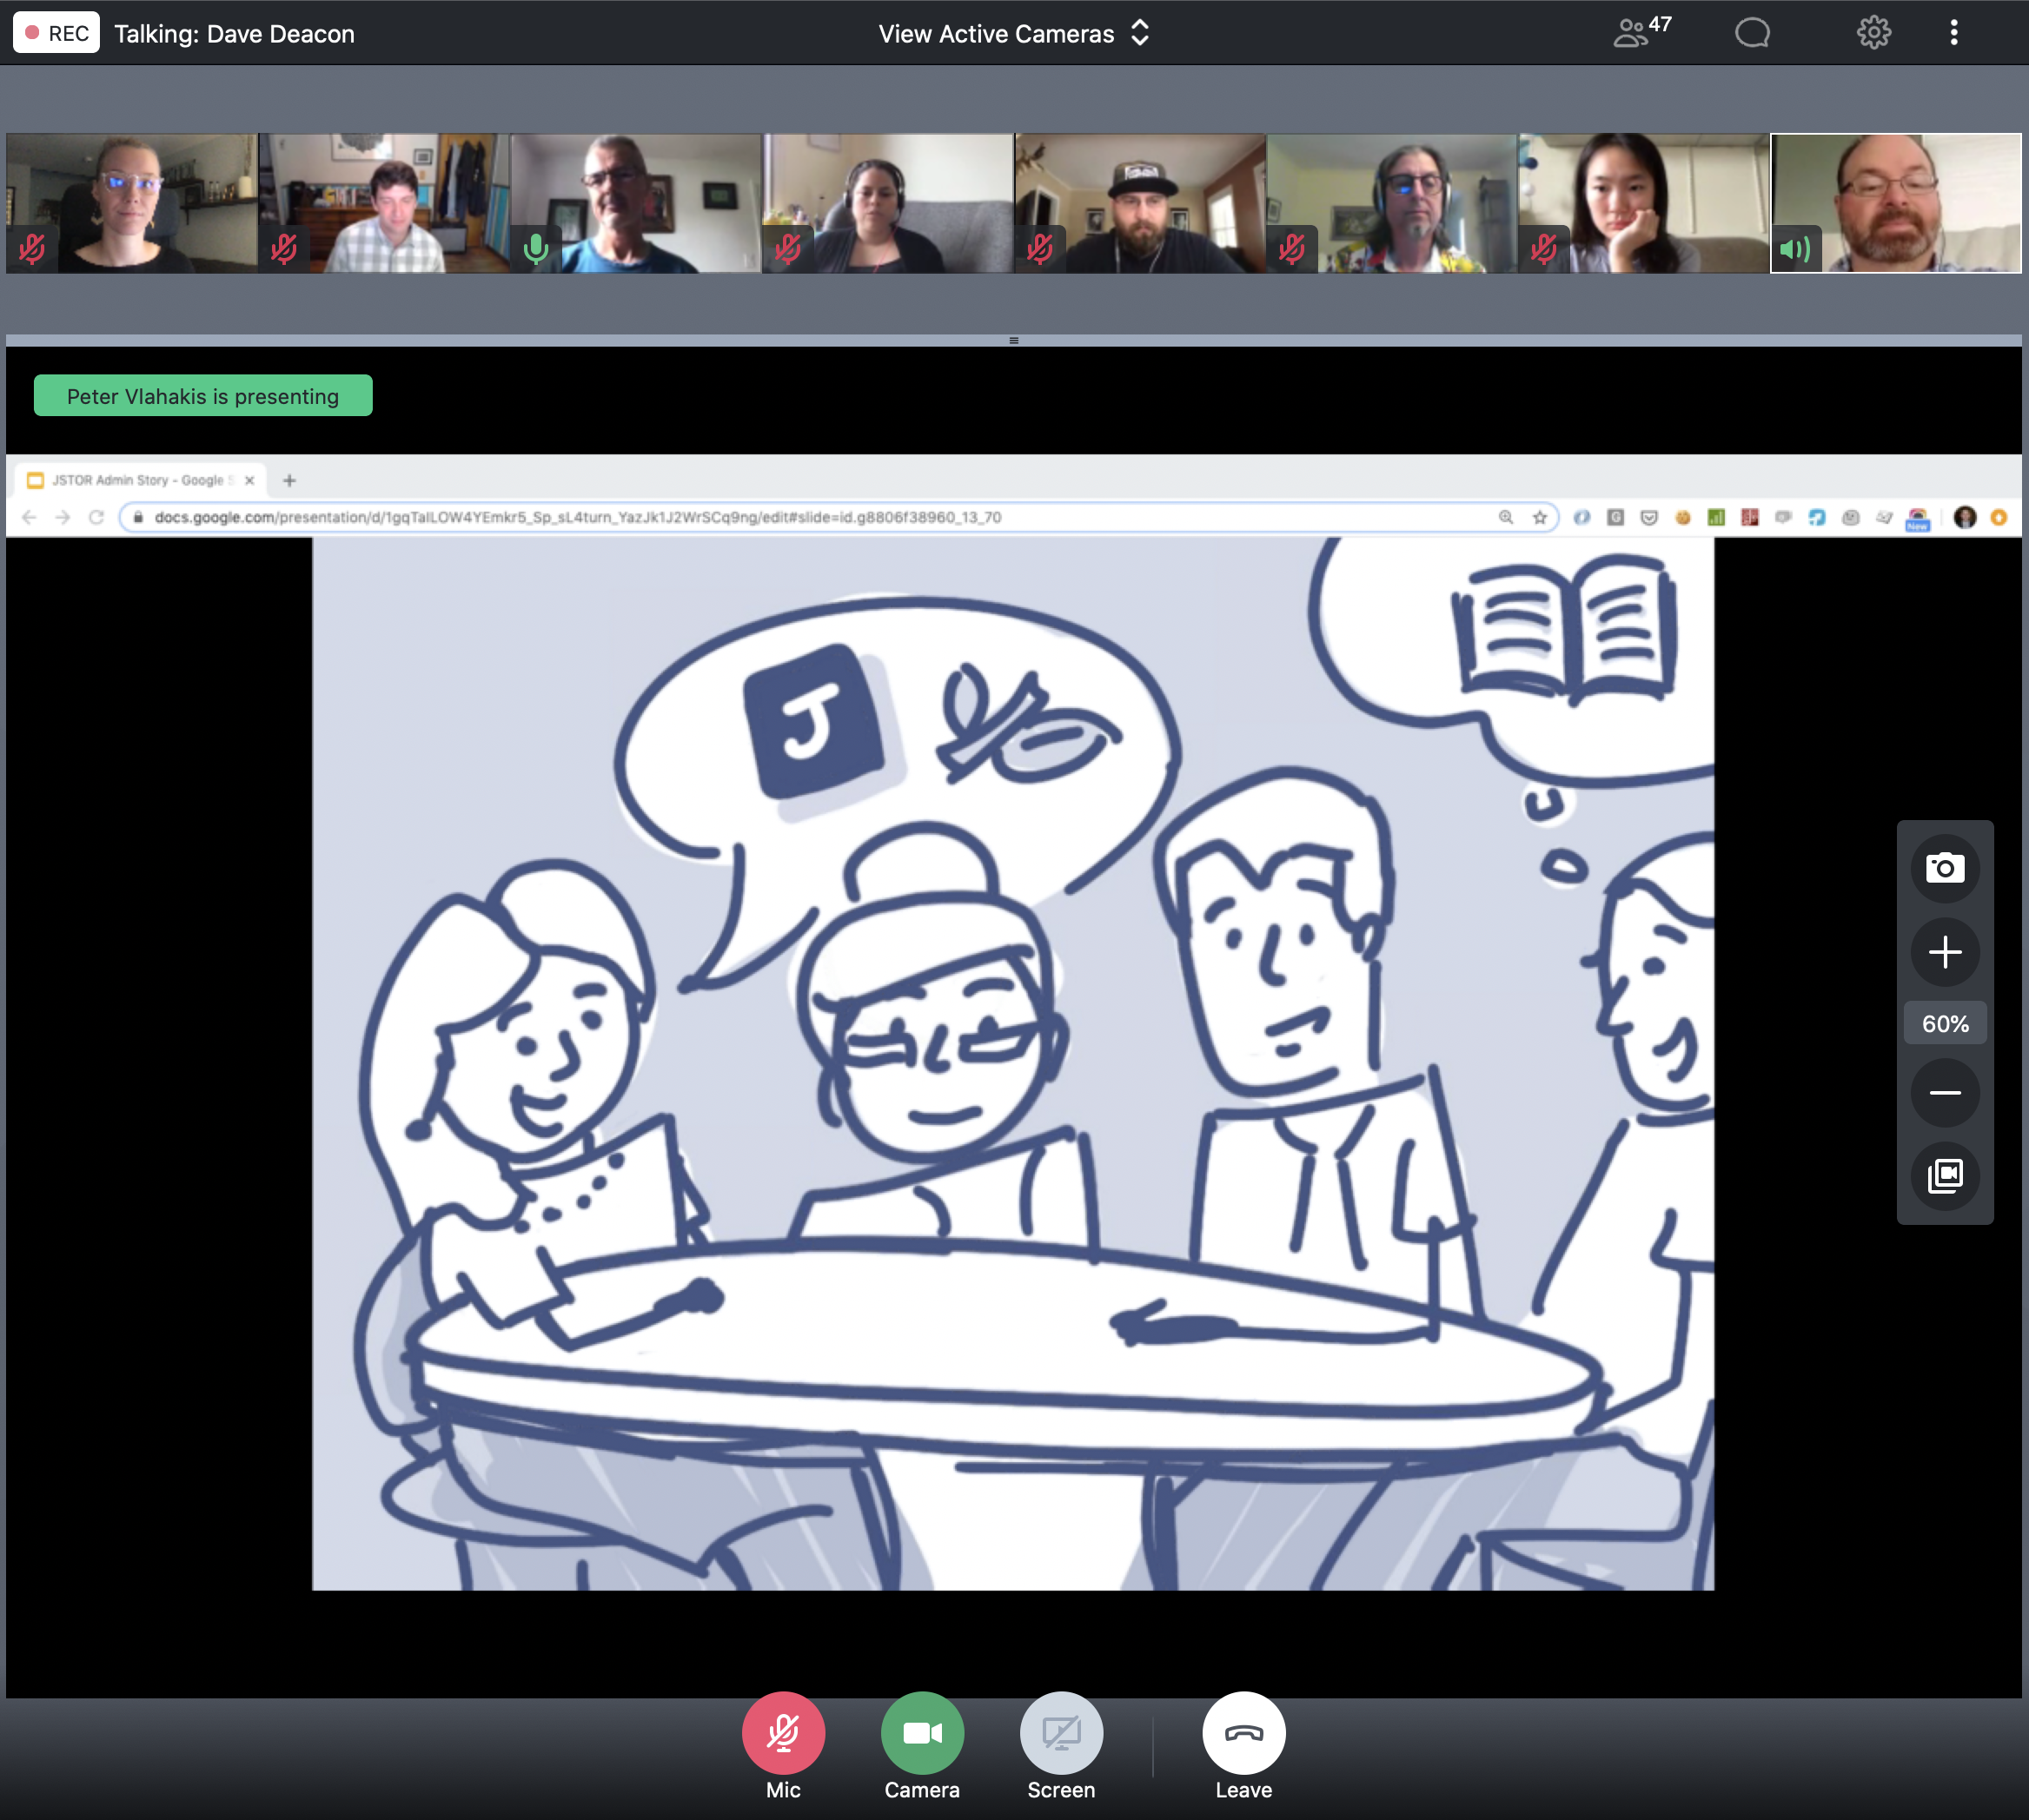 A team of nine people presenting a story on a webinar screen